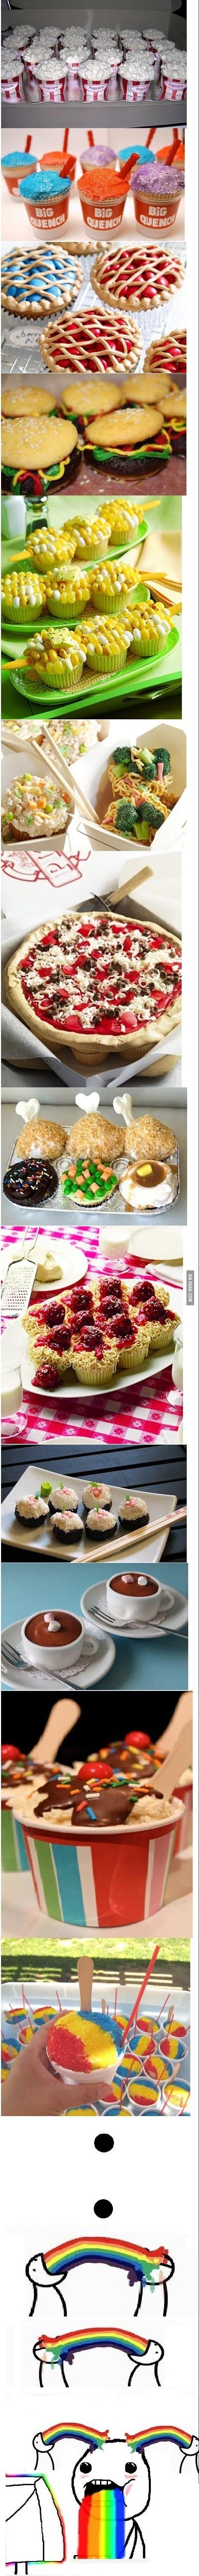 Cupcaking LvL : Ninja! (dont get fooled by their appearance)